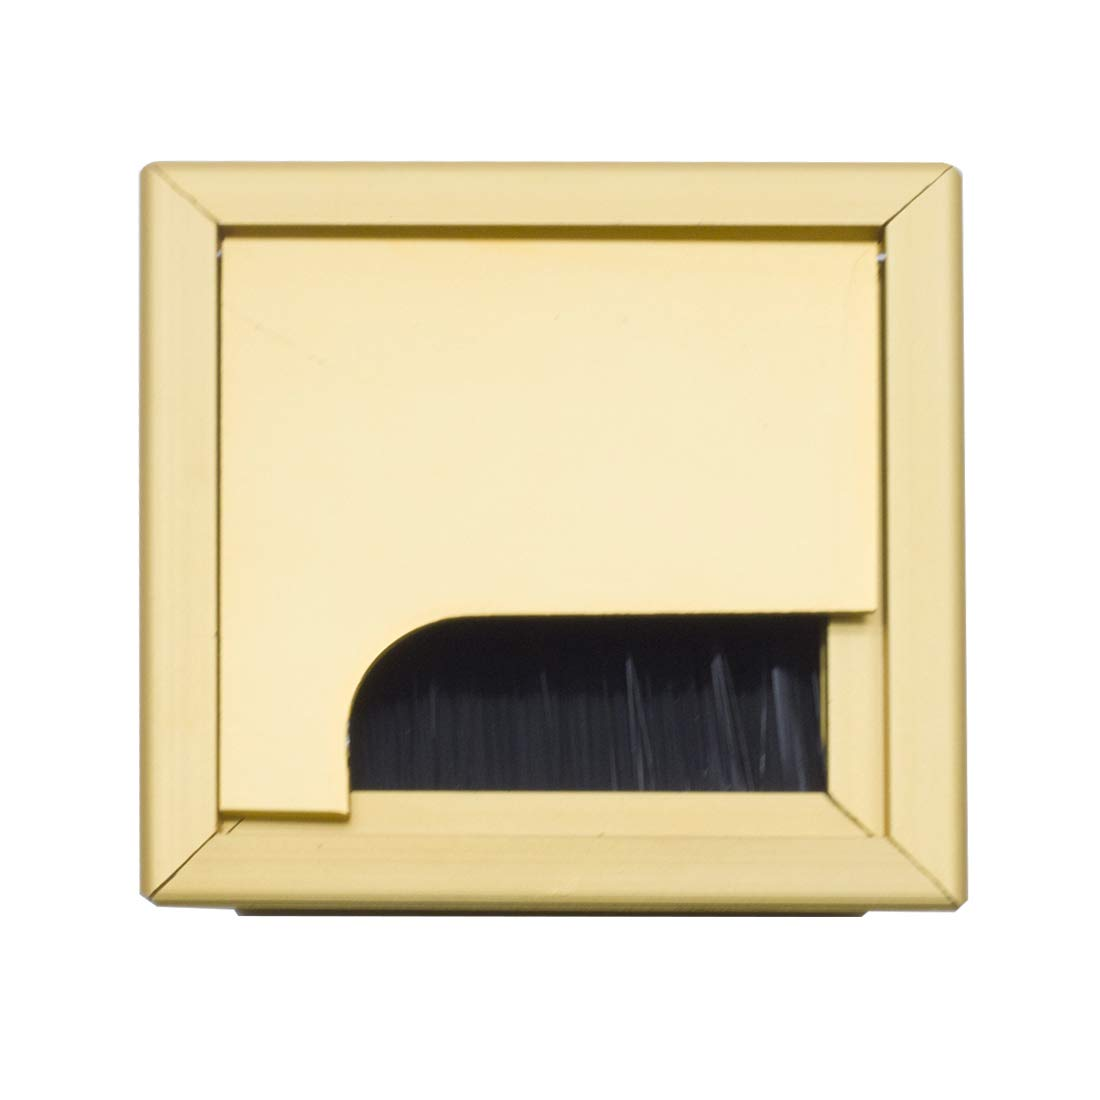 Autoly Desk Grommet Gold Square Desk Cord Cable Hole Cover Grommet for Computer Table, 80mm Length